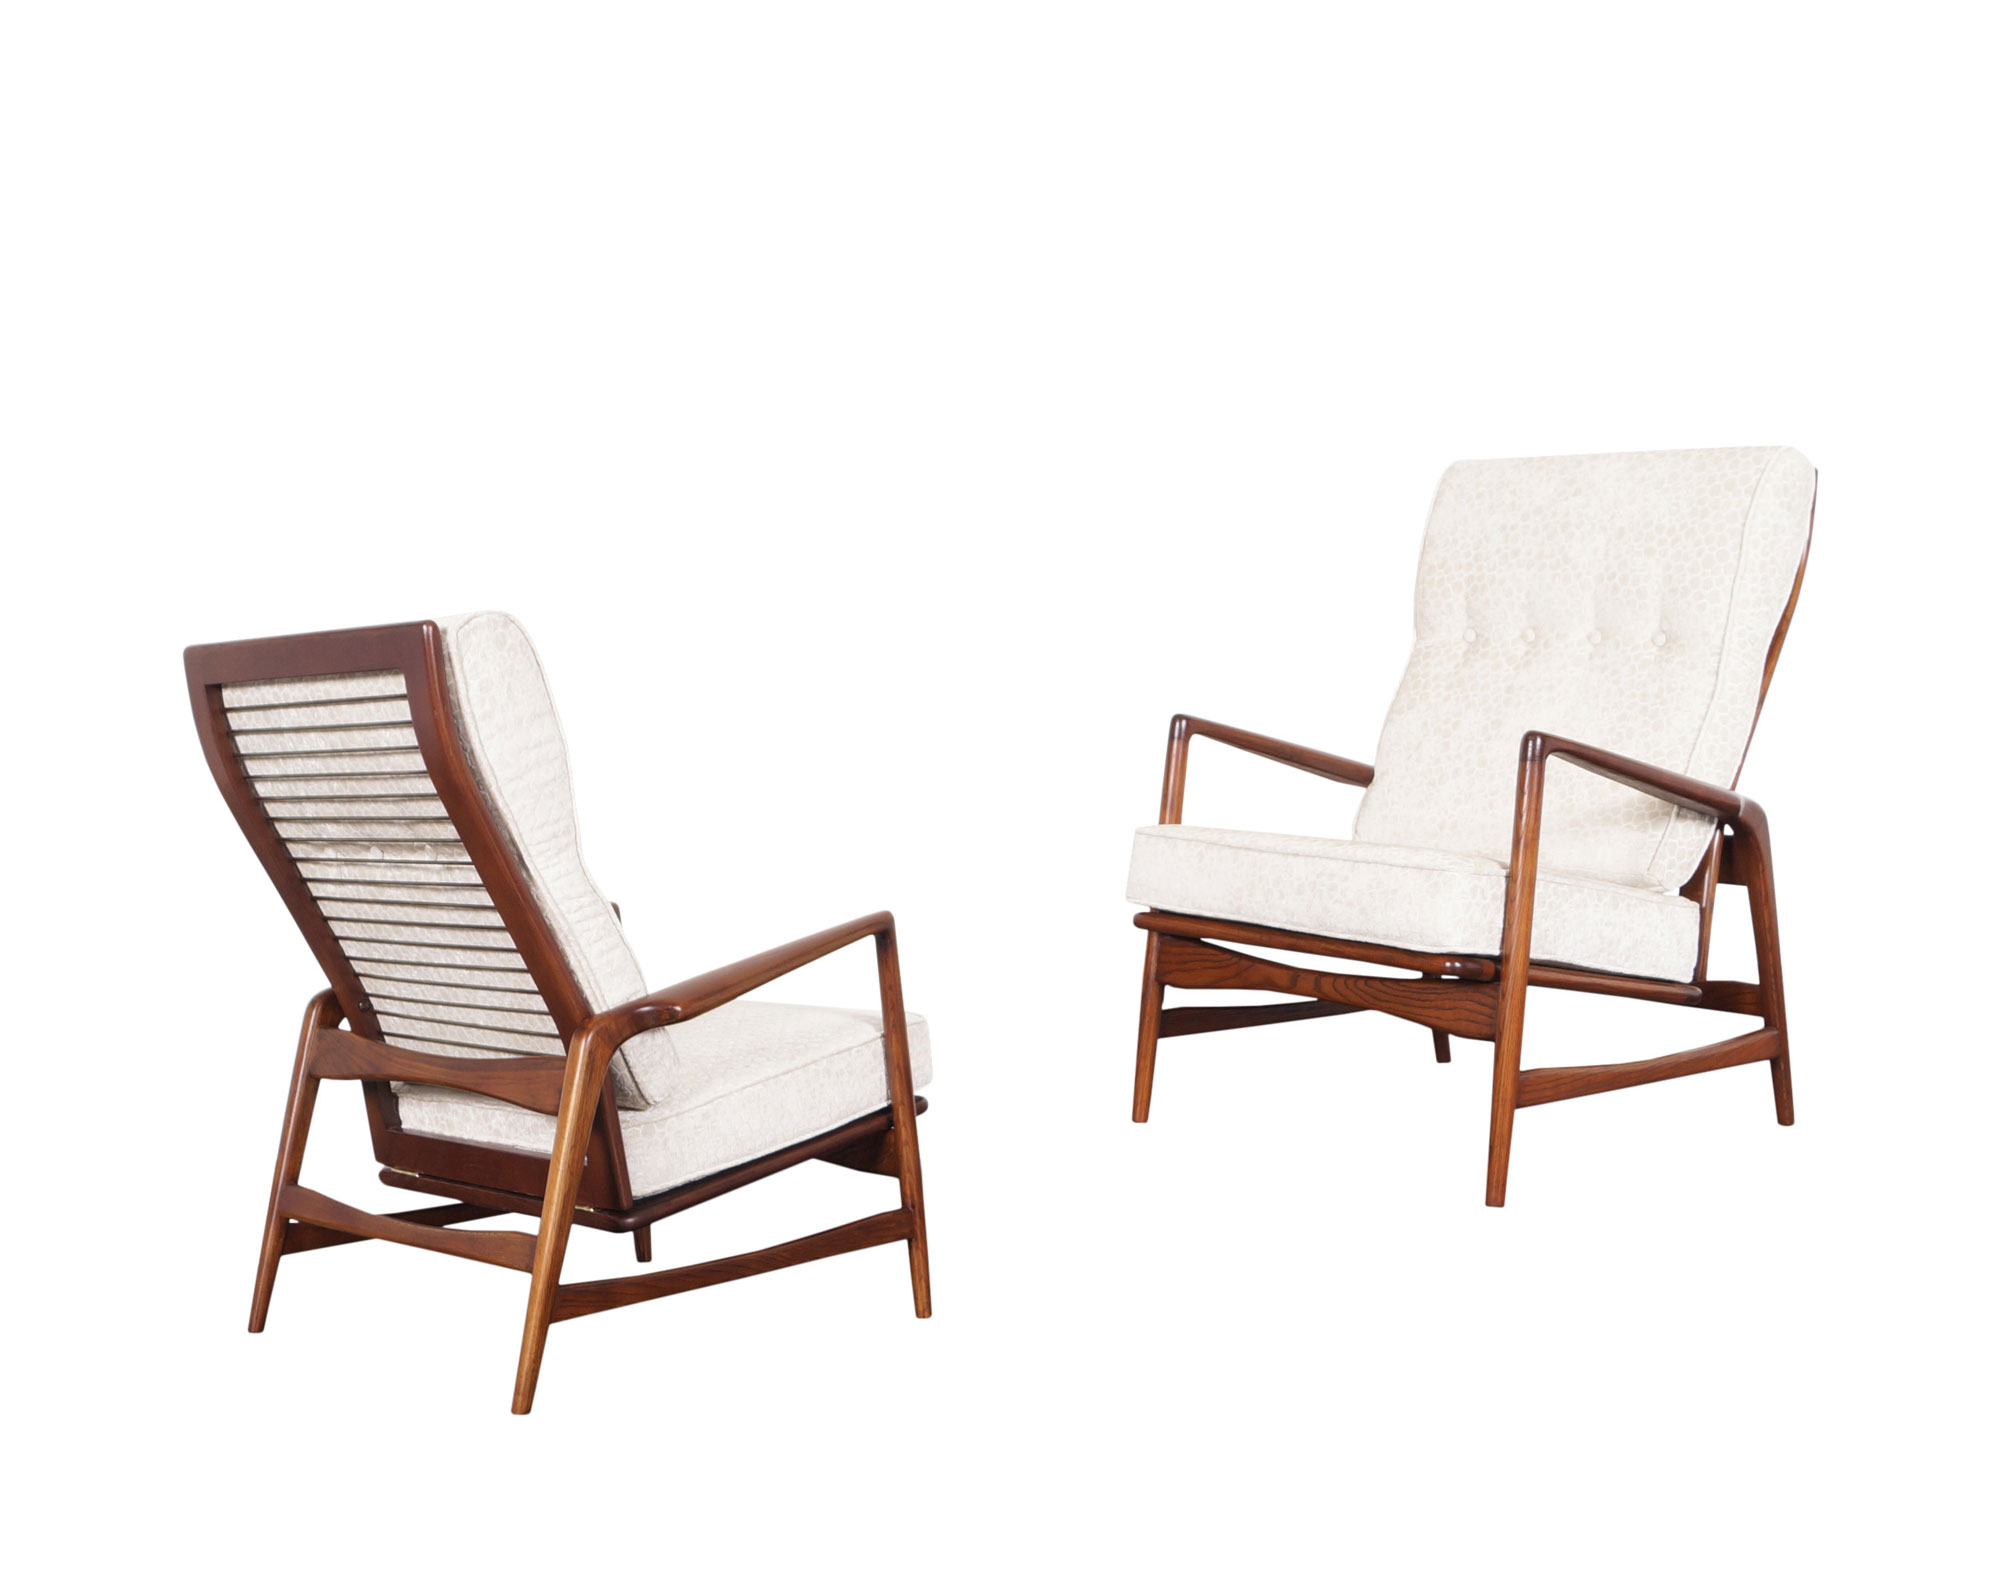 Danish Modern Walnut Reclining Lounge Chairs by Ib Kofod Larsen